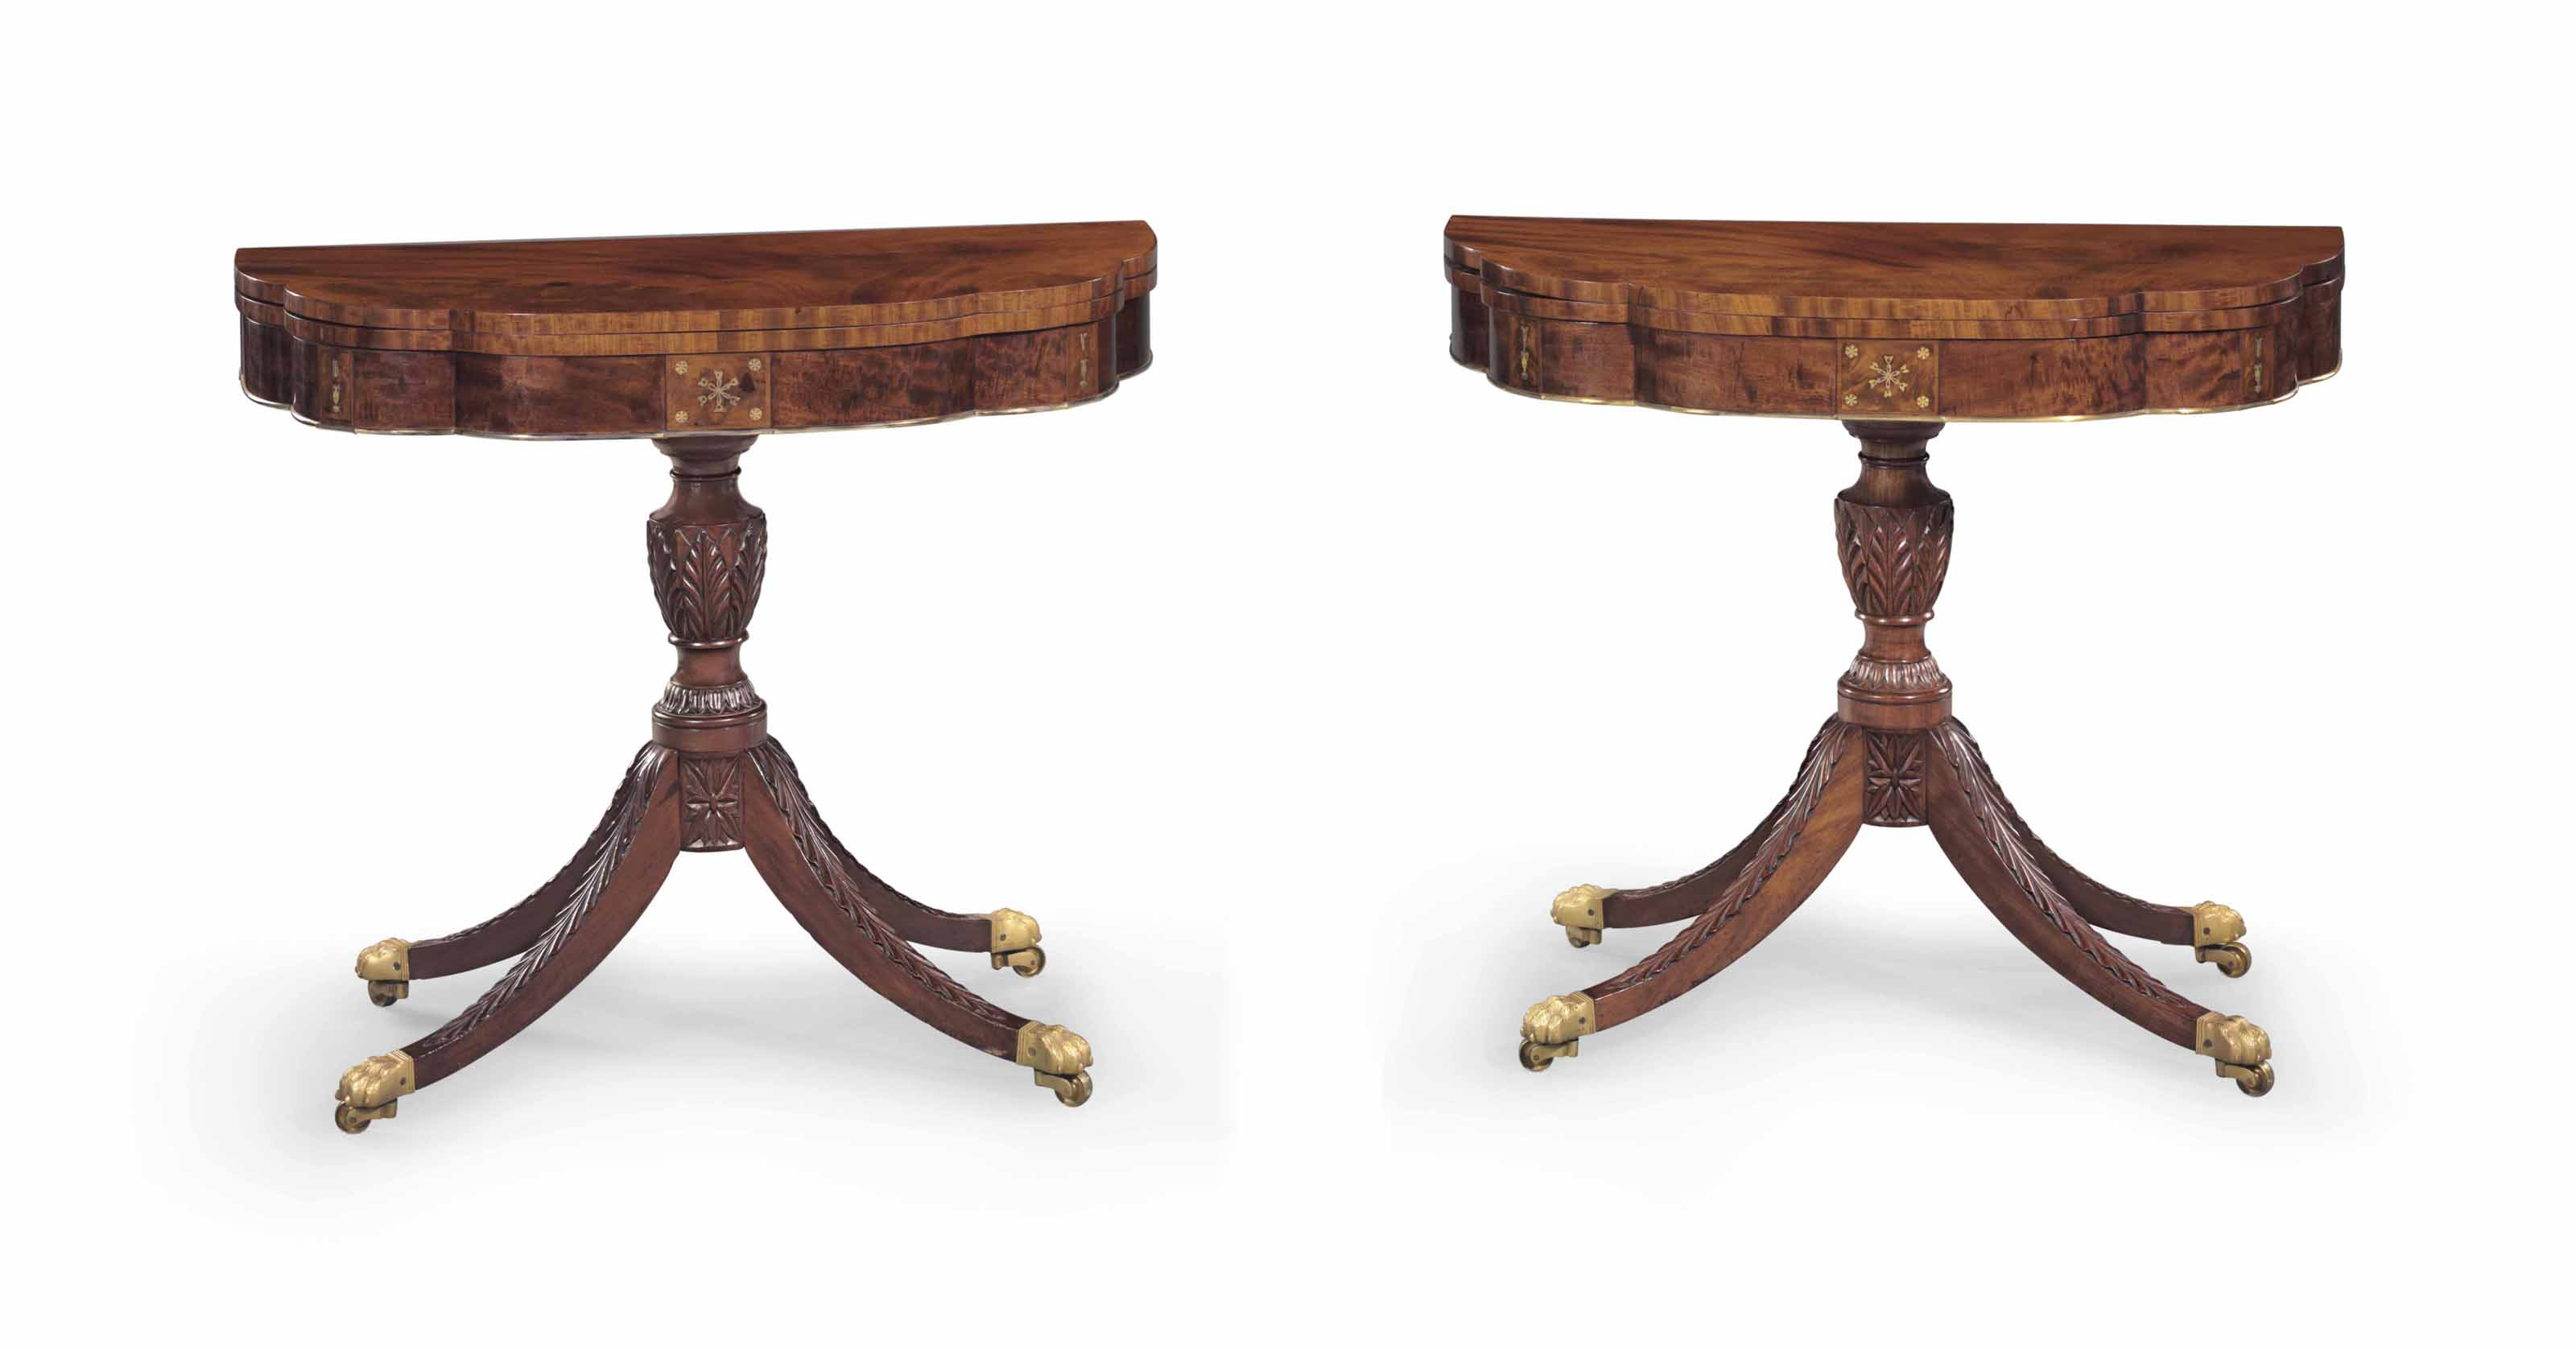 A PAIR OF CLASSICAL BRASS-INLAID MAHOGANY CARD TABLES